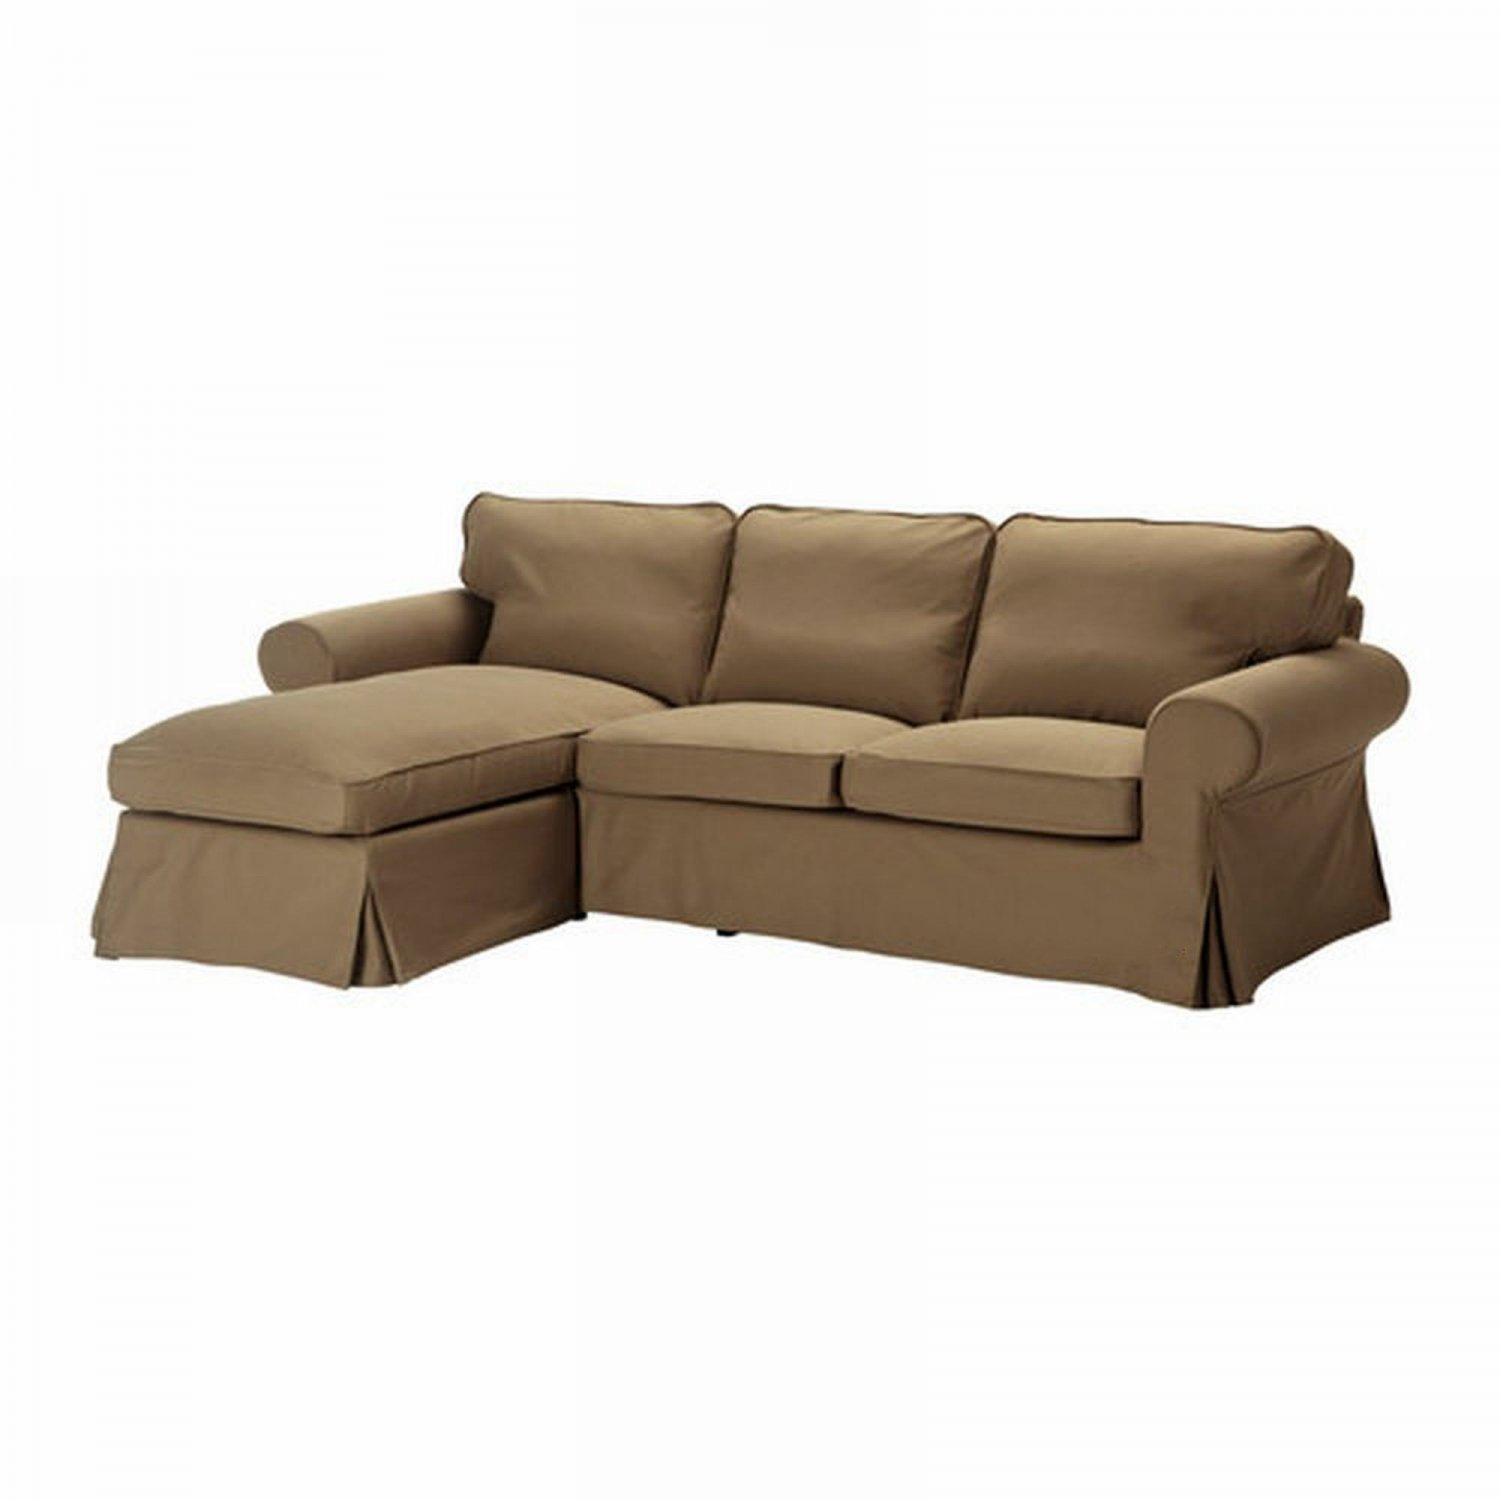 One Seat Sectional Chaise